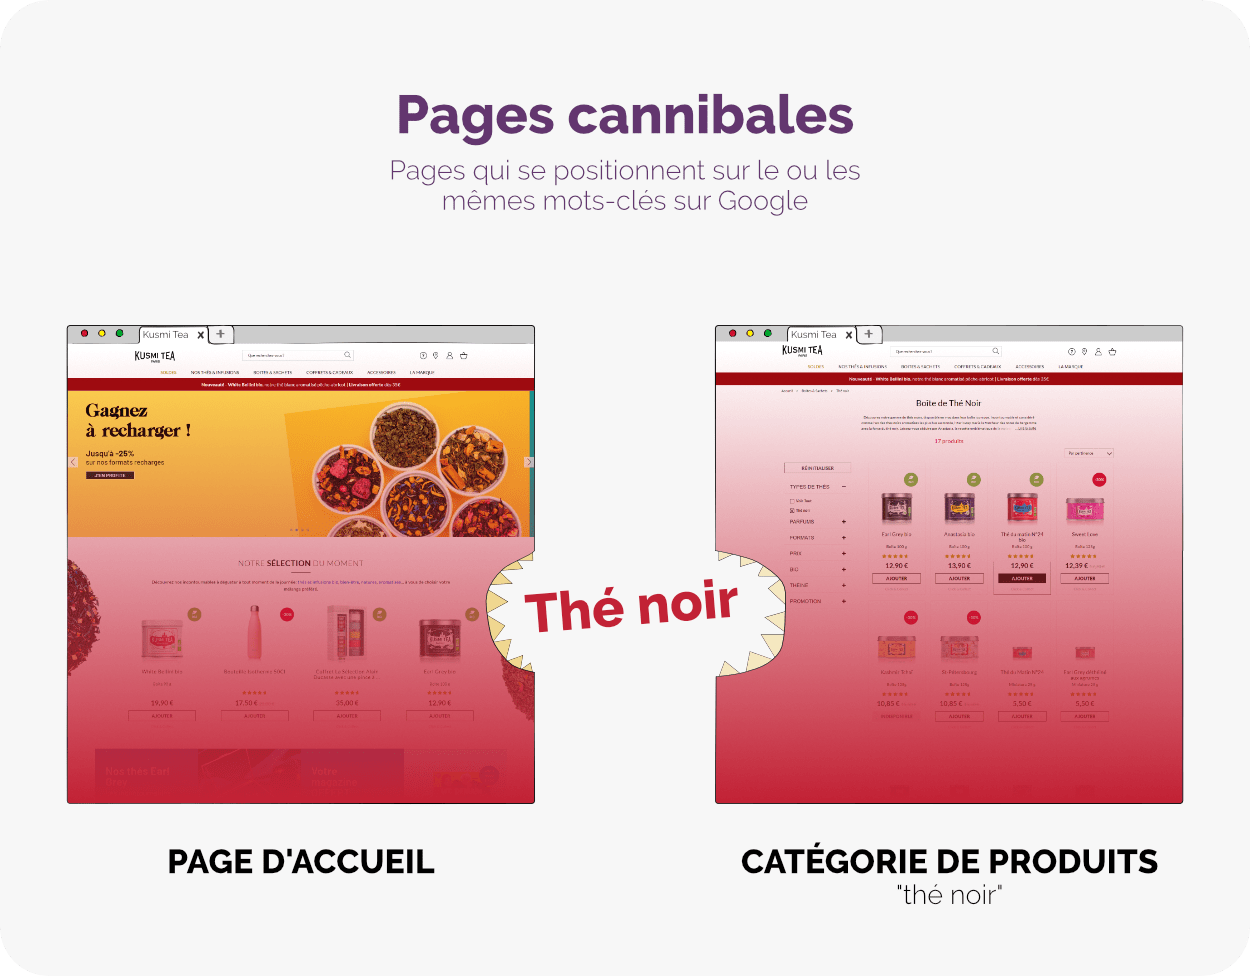 Pages cannibales en SEO